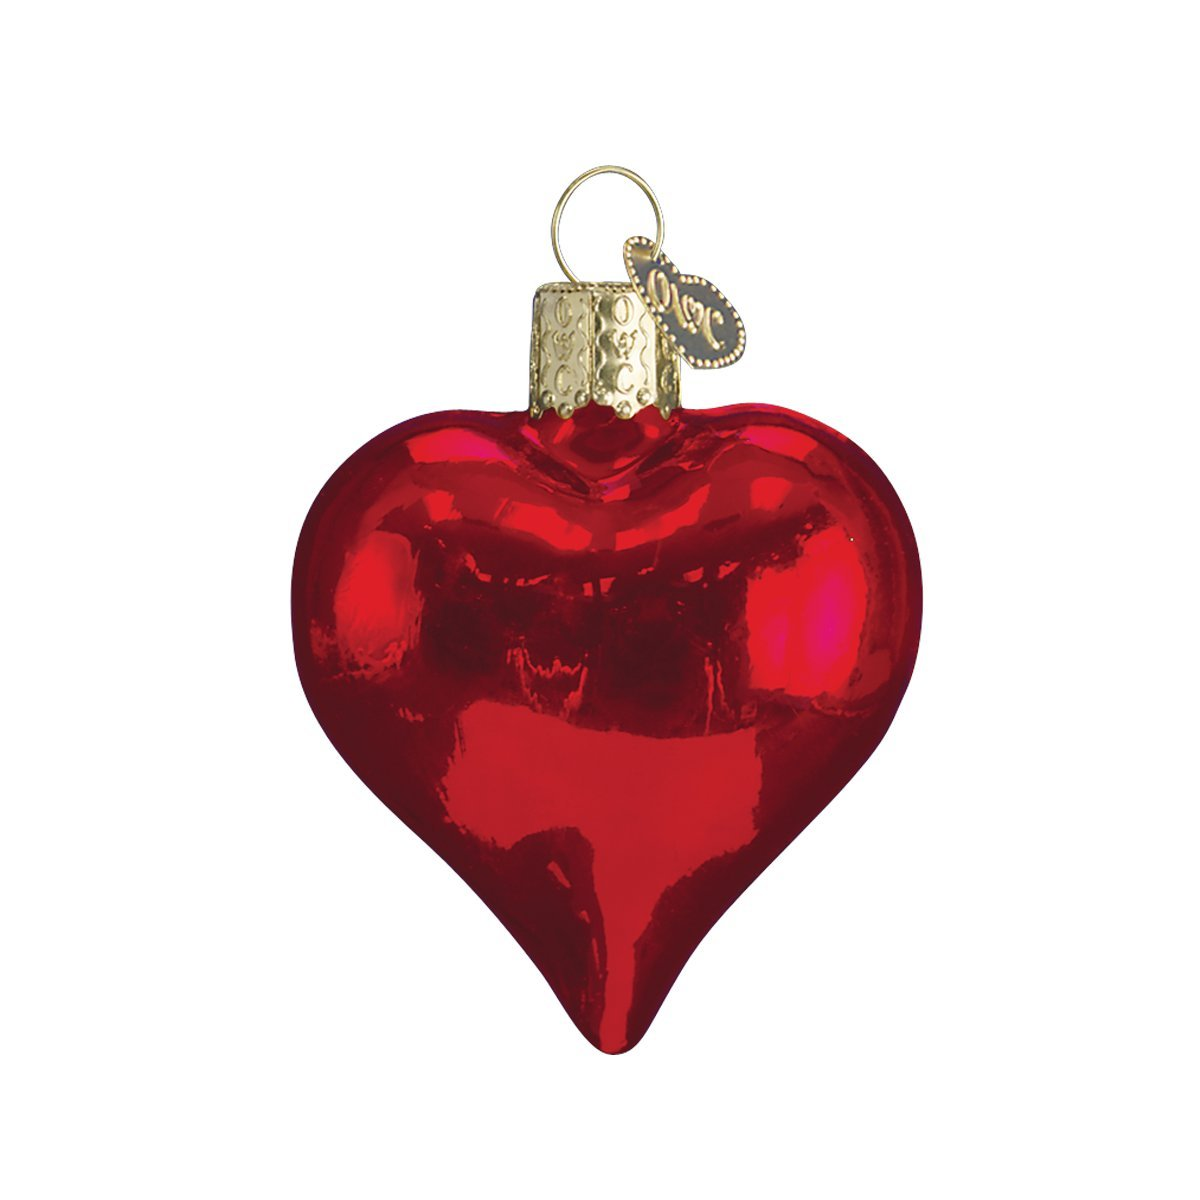 Old World Christmas Shiny Red Heart Glass Blown Ornament